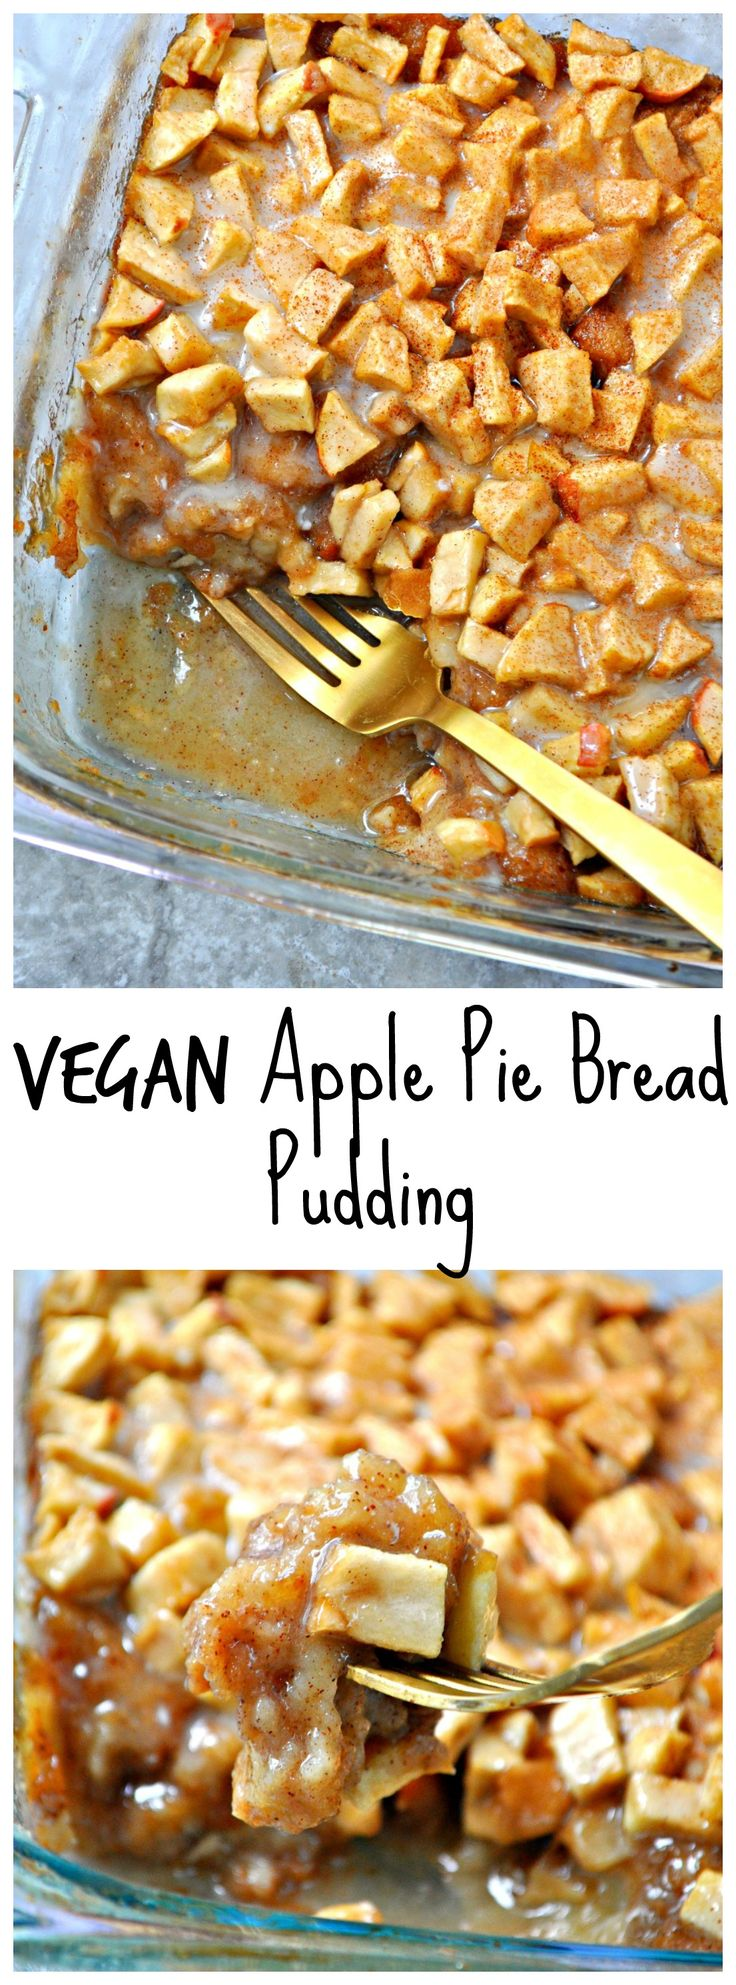 Vegan apple pie bread pudding is the best bread pudding. Super easy, incredibly delicious! Tastes like apple pie and bread pudding had a baby!